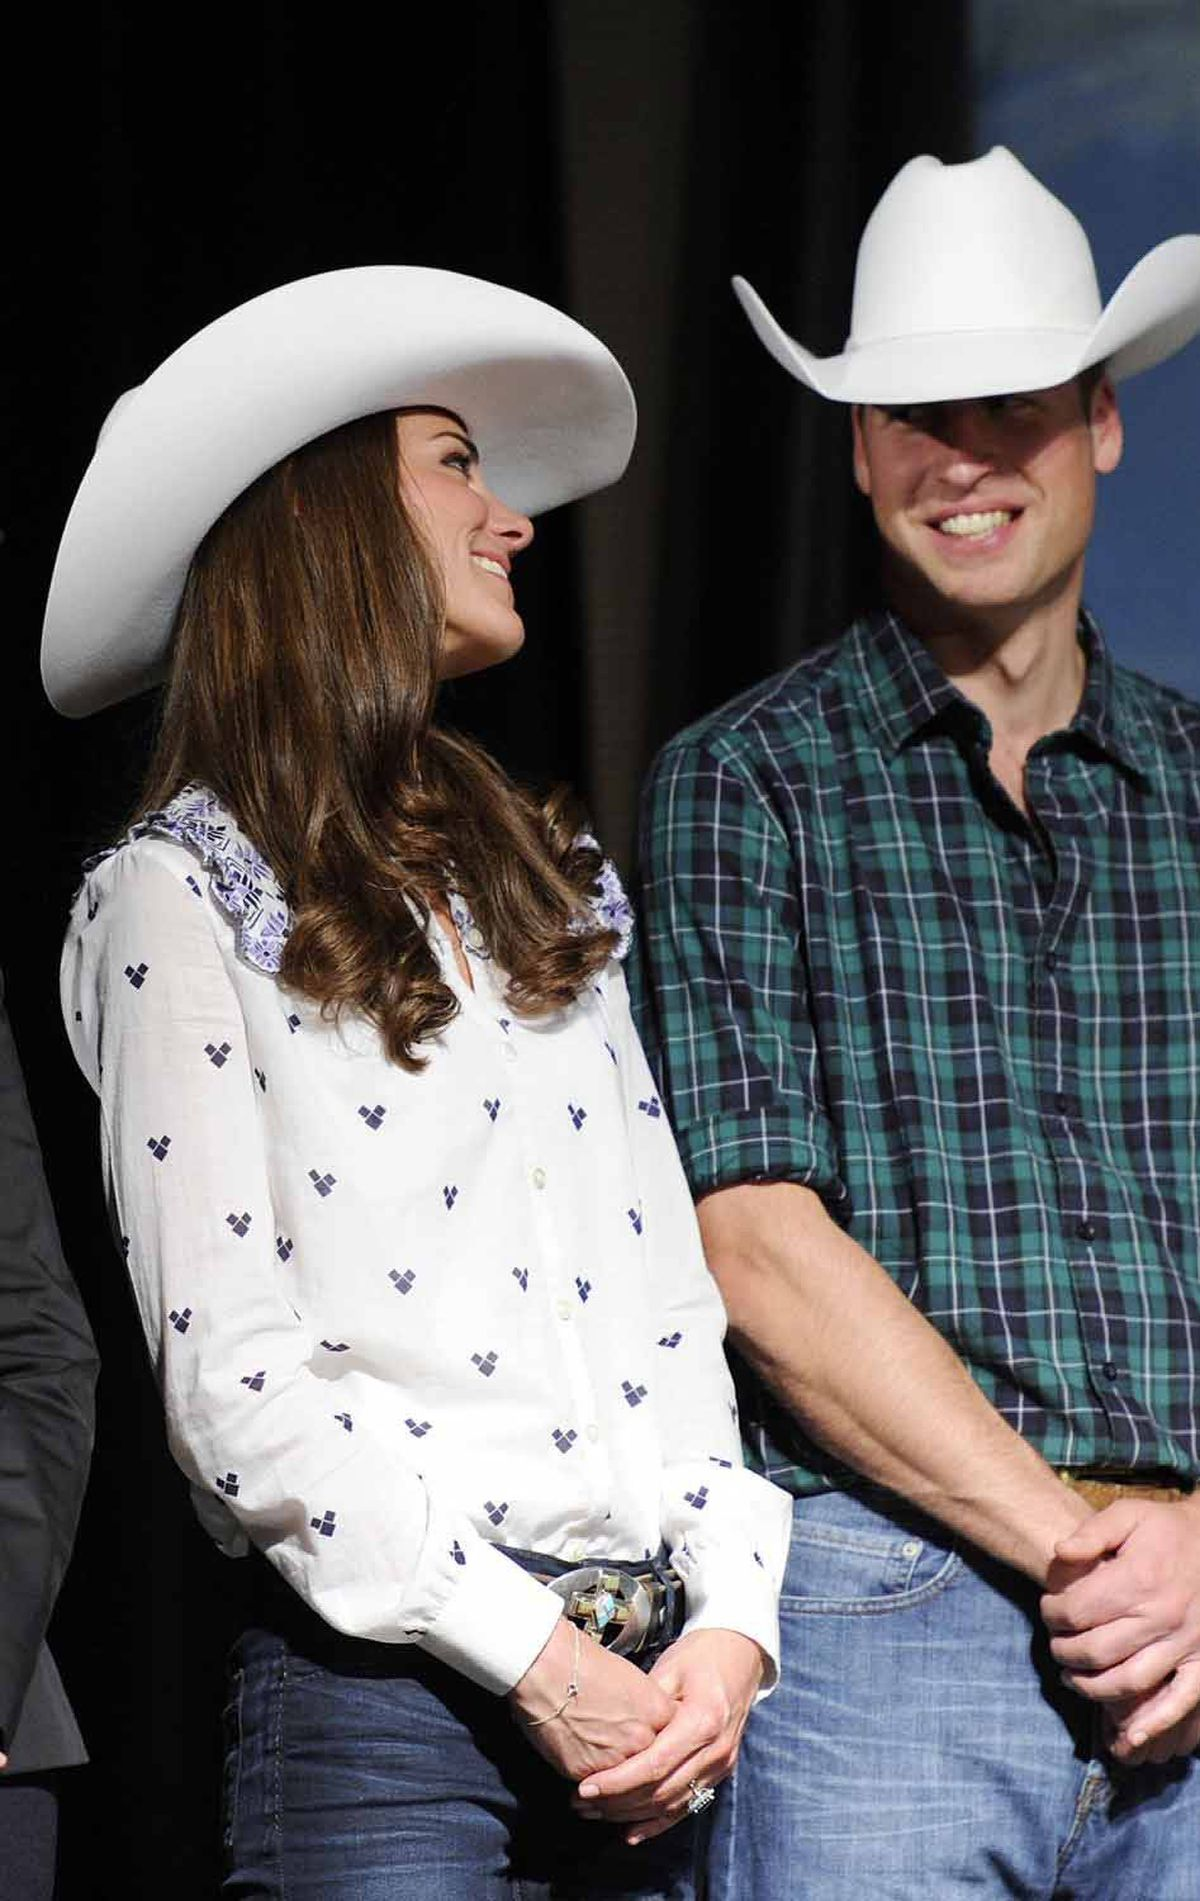 Later in the day she changes into a more casual outfit, featuring the 10-gallon hat presented to her on arrival and an Alice Temperley top.